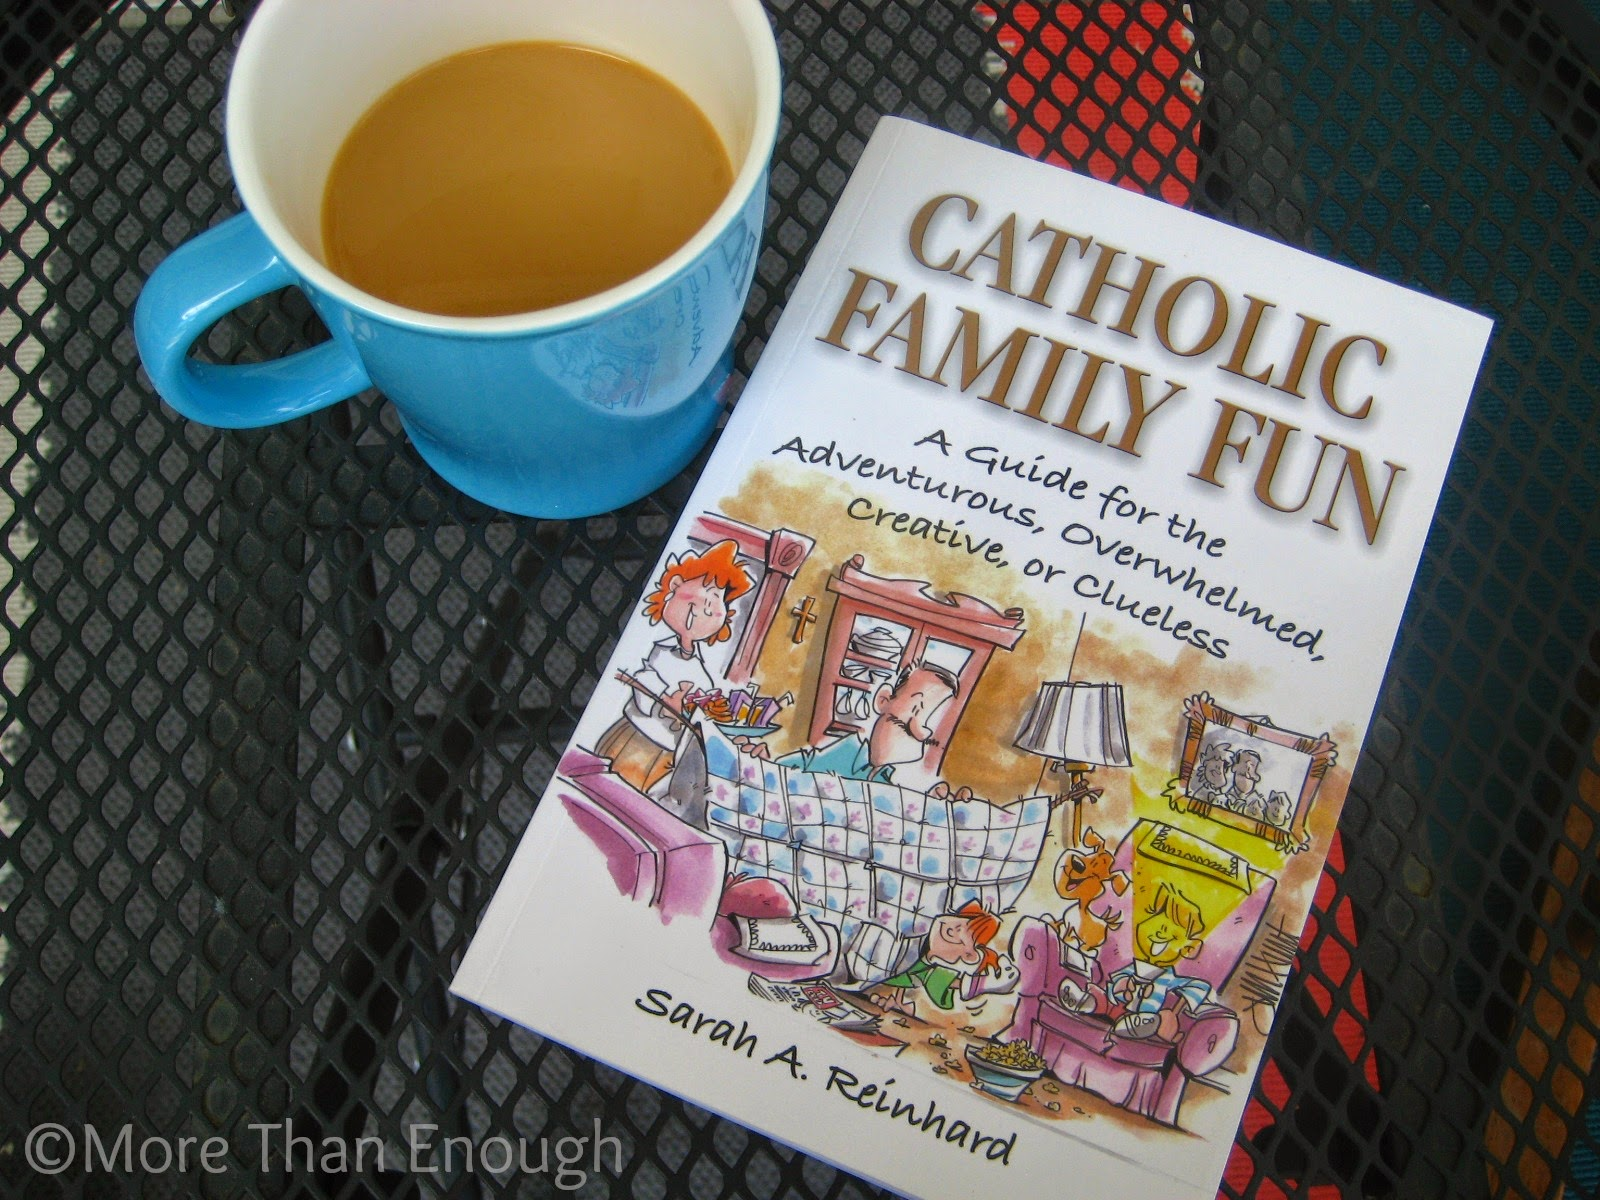 Catholic Family Fun Giveaway